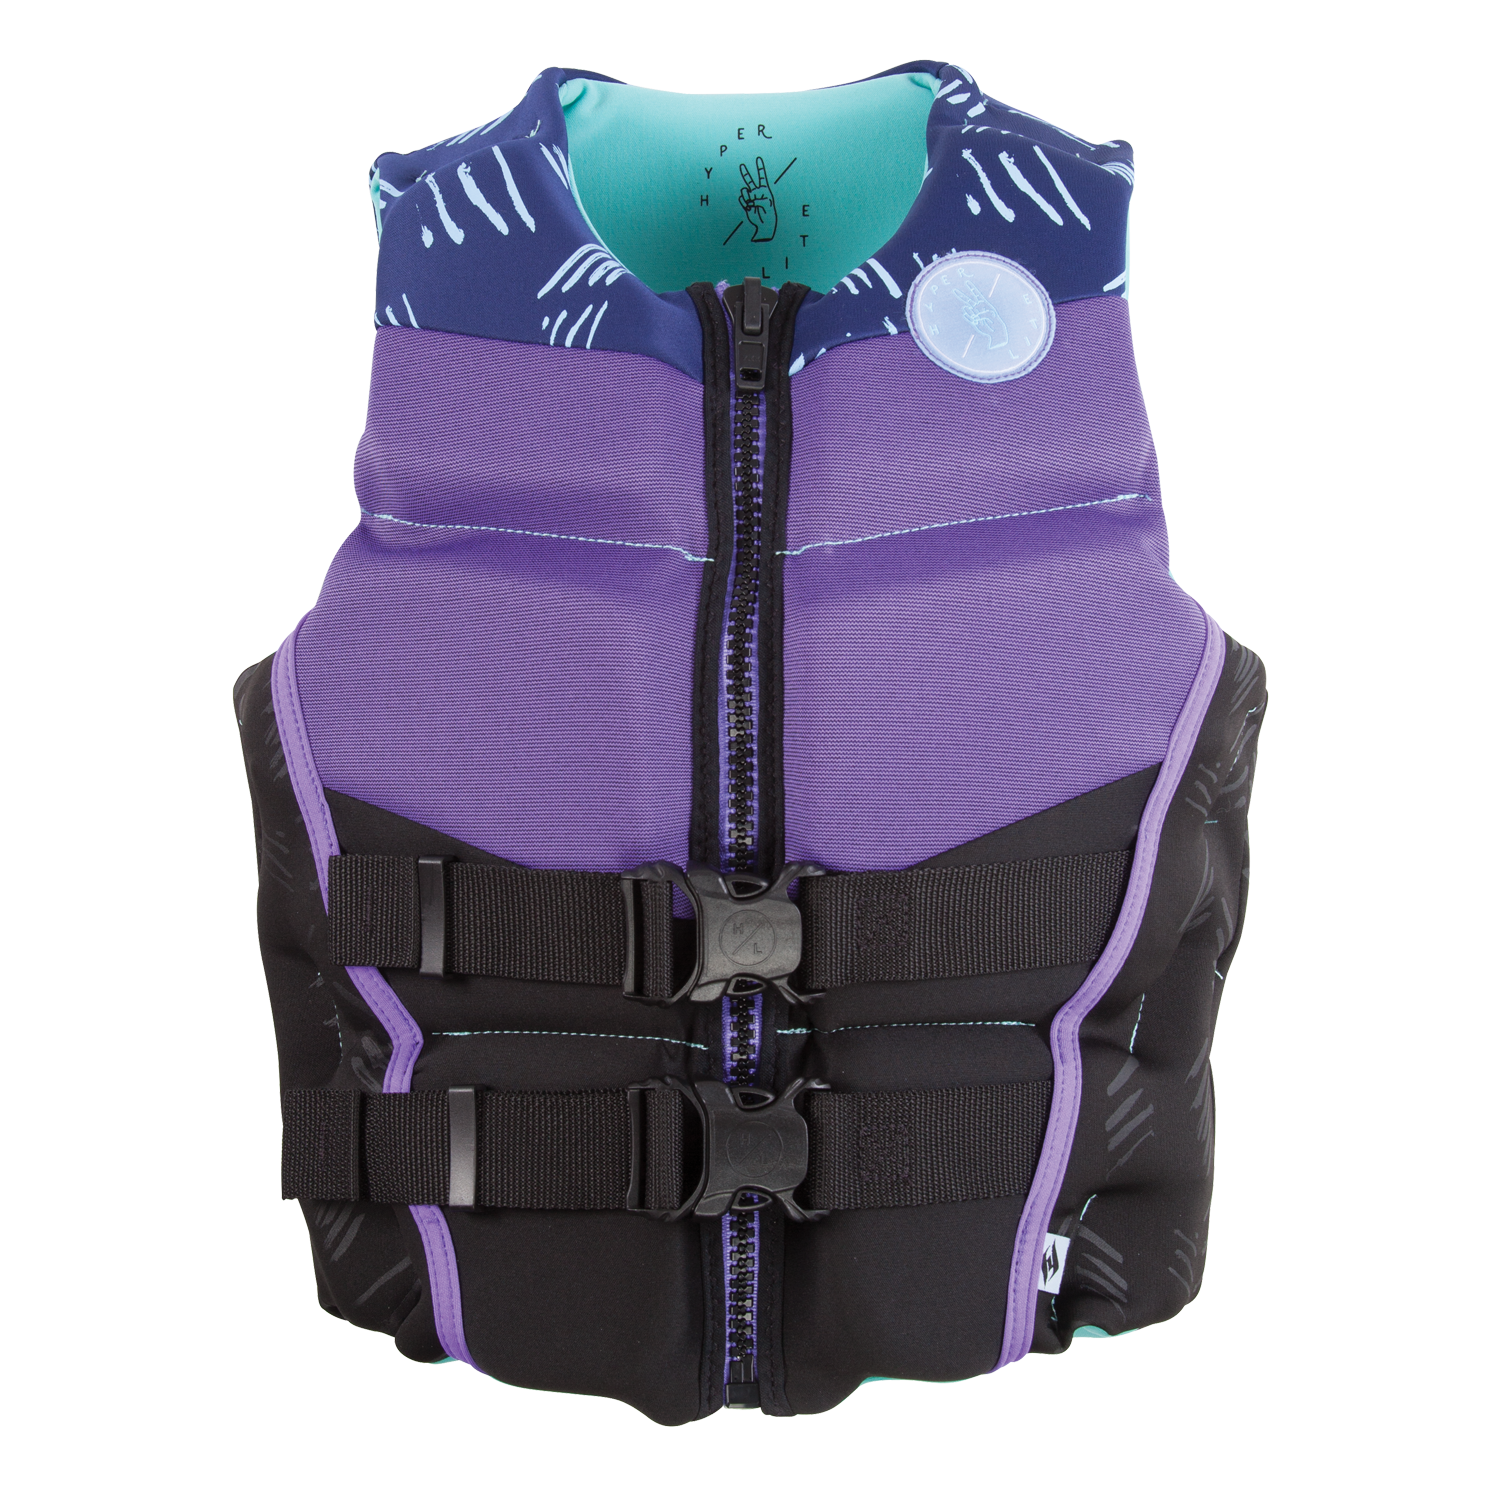 Hyperlite Ambition Life Vest - 88 Gear